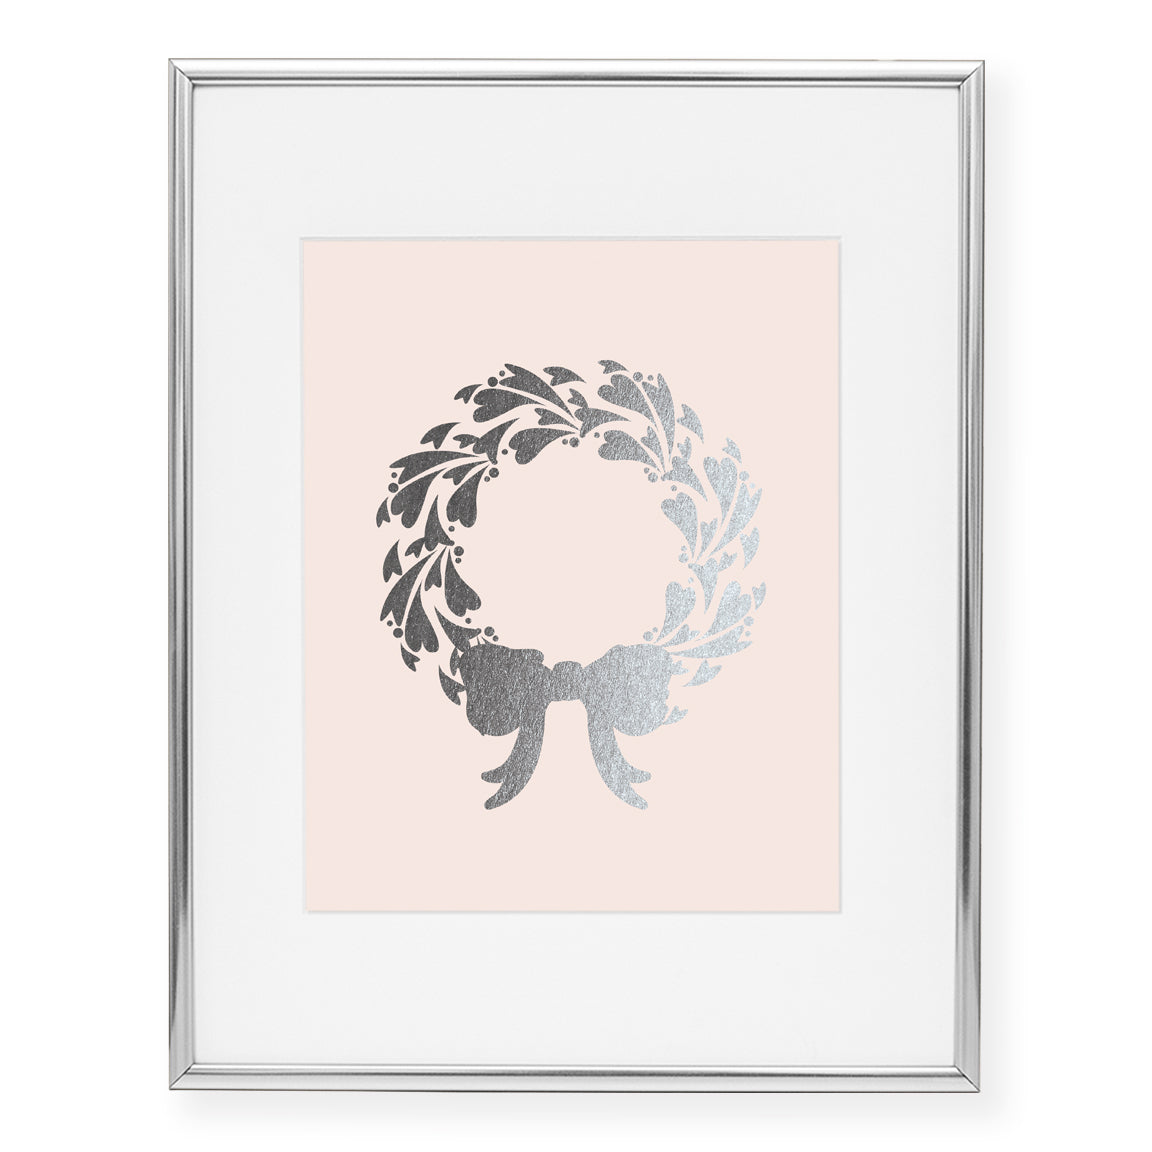 Wreath Foil Art Print